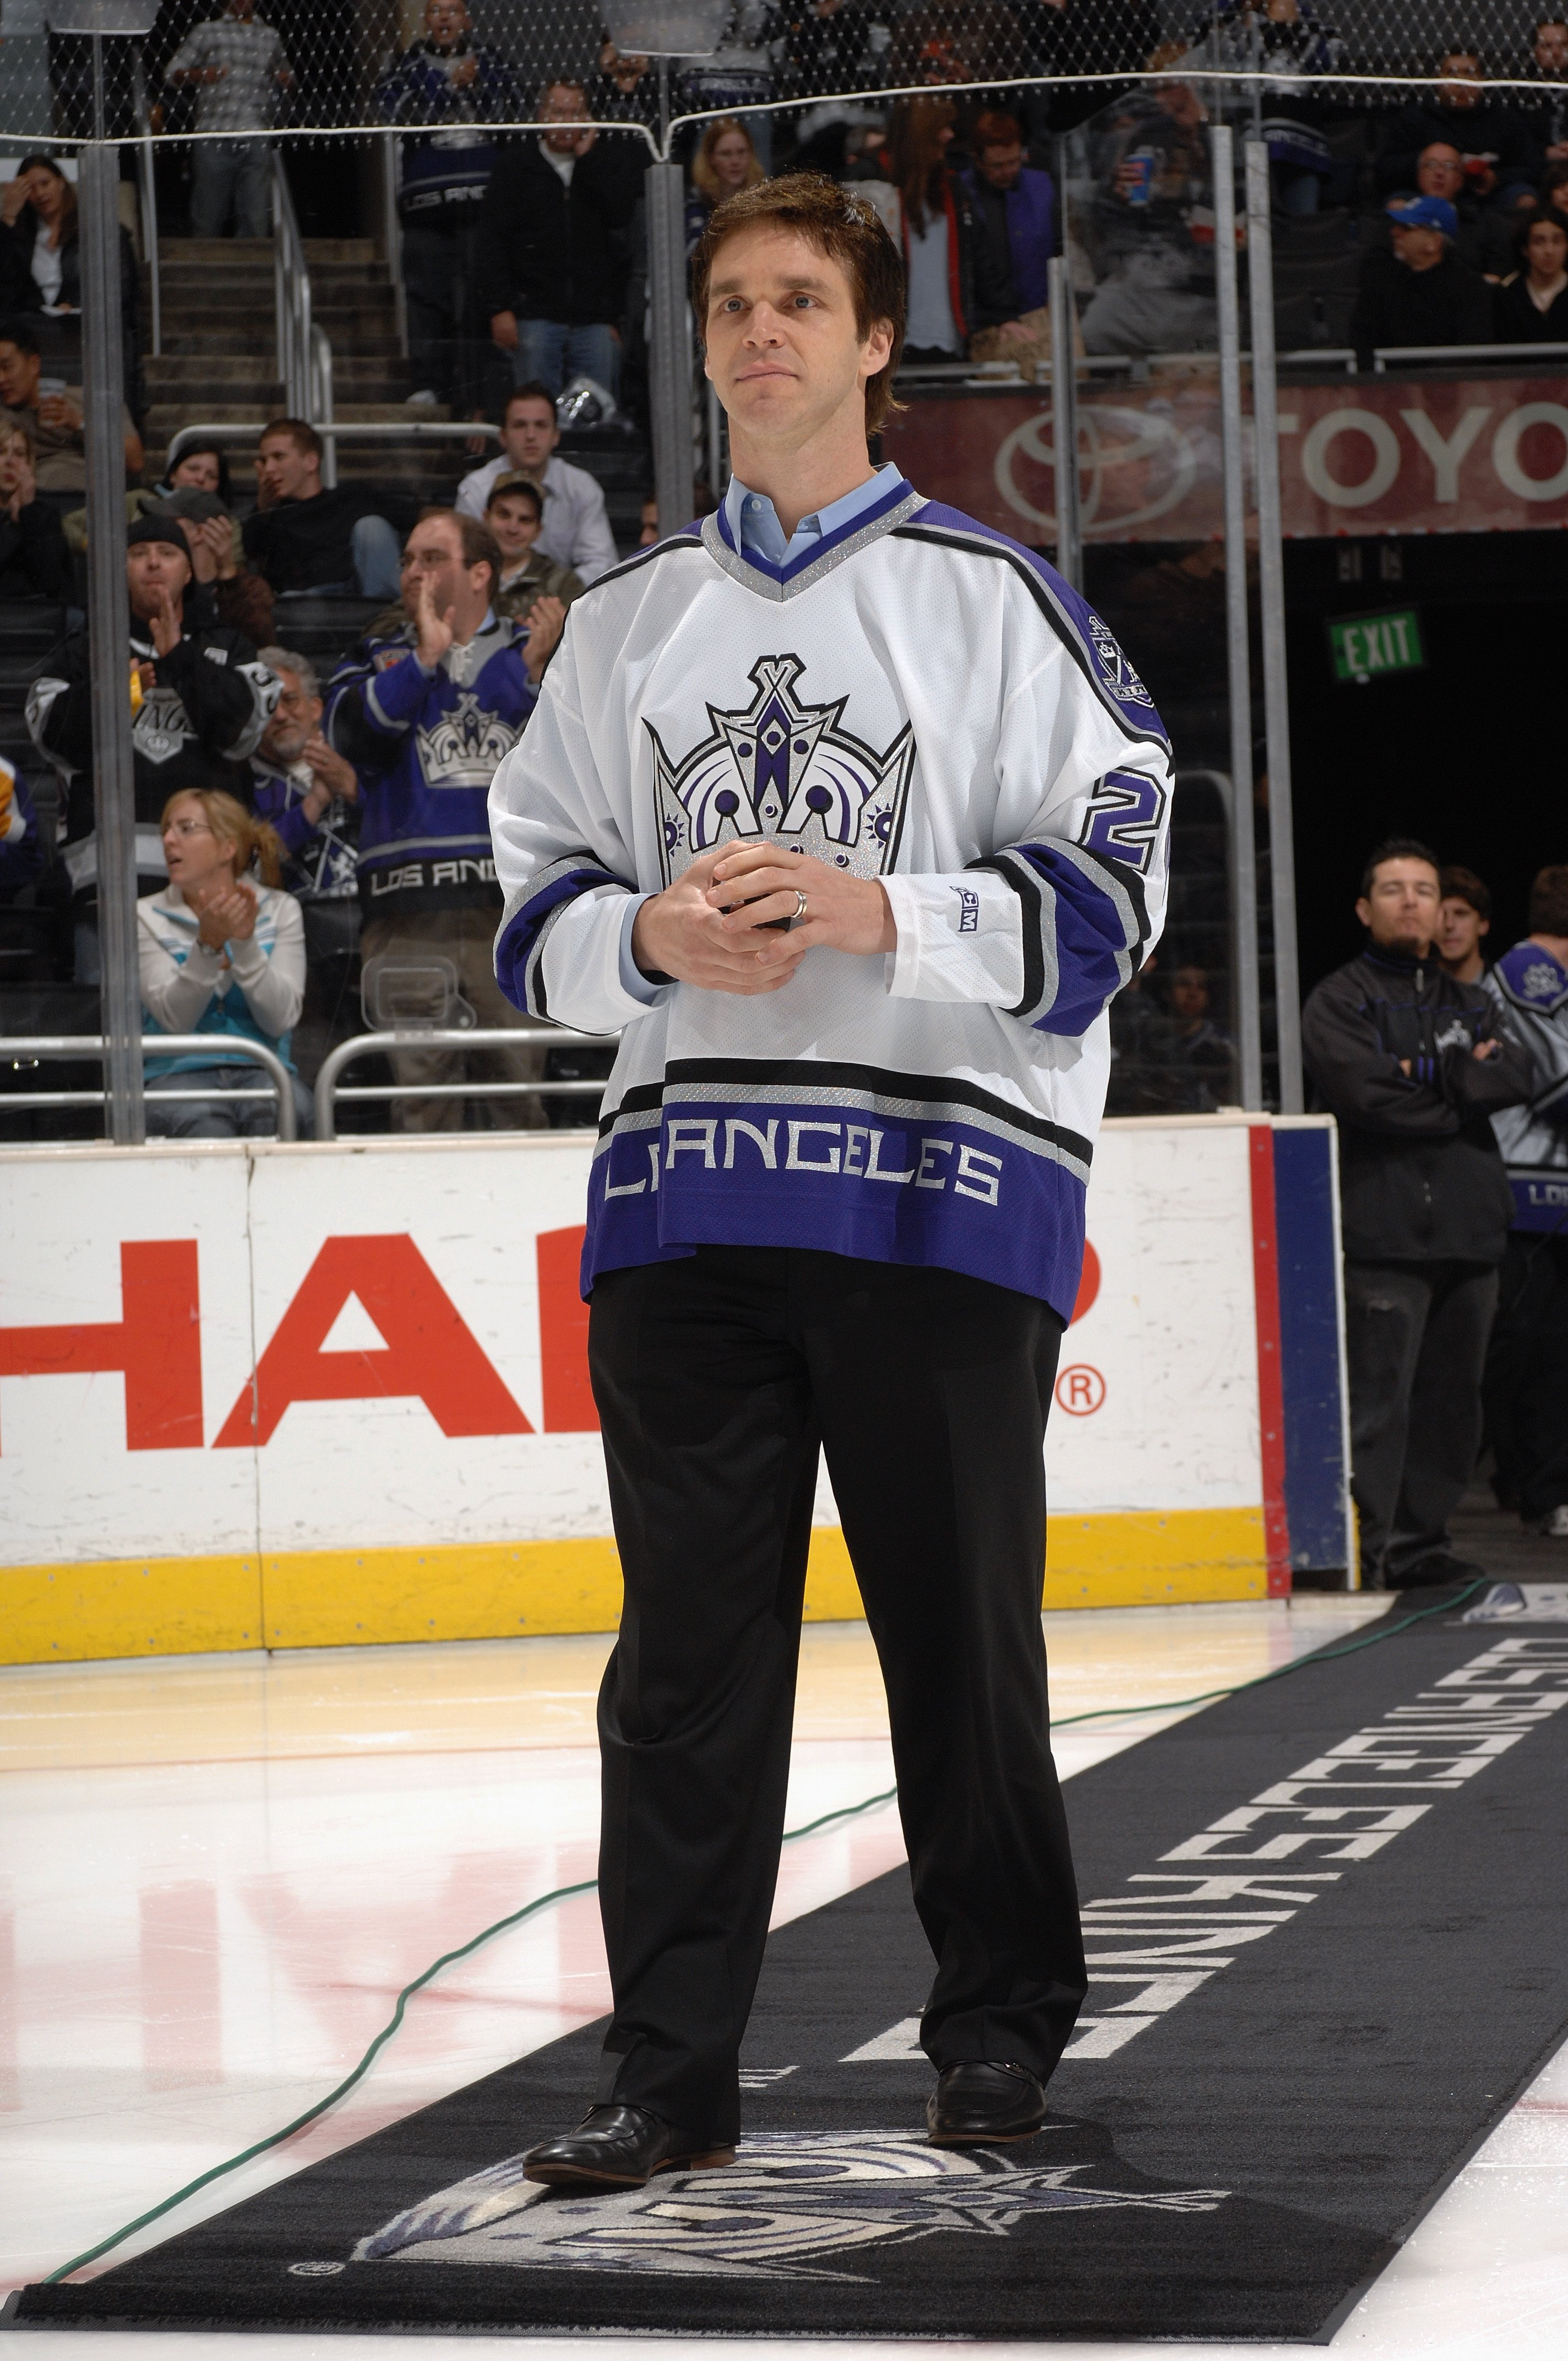 LOS ANGELES - MARCH 21:  Former Los Angeles Kings player Luc Robitaille walks out to center ice for the ceremonial face off before the game against the Dallas Stars on March 21, 2007 at Staples Center in Los Angeles, California. The Stars won 4-2. (Photo